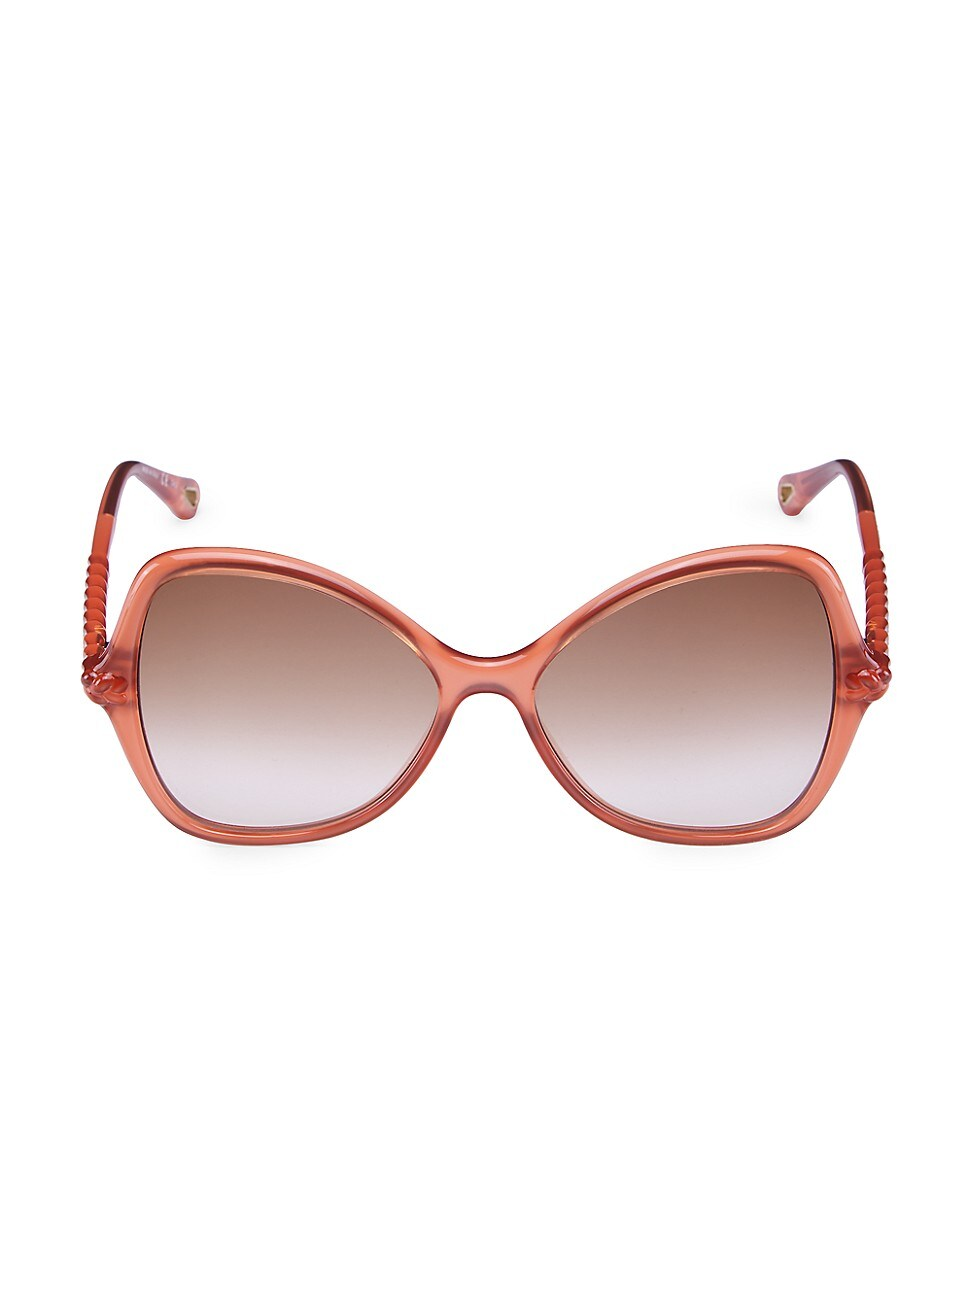 Chloé WOMEN'S 56MM BUTTERFLY SUNGLASSES